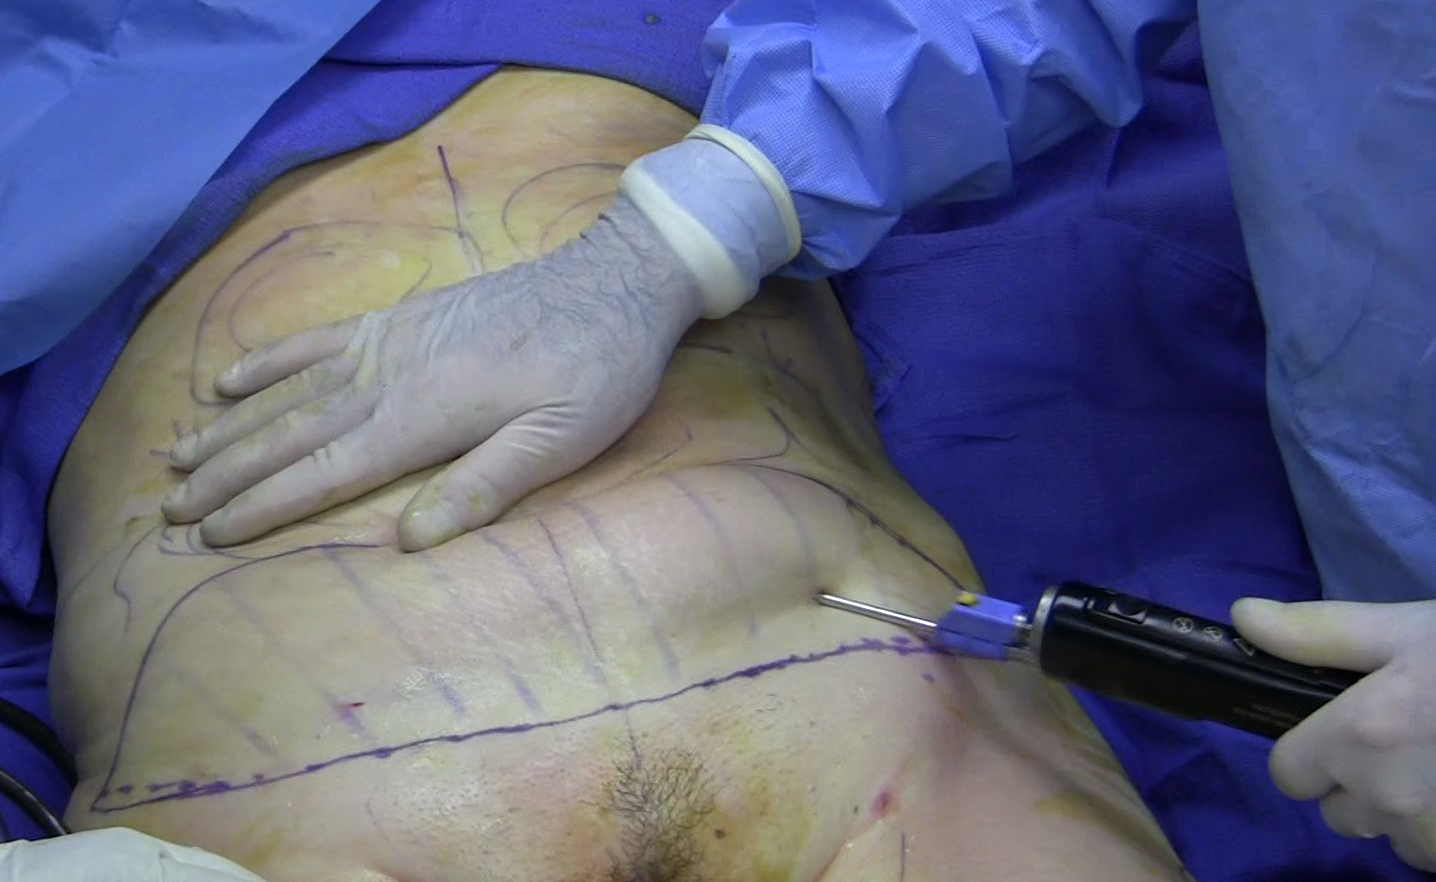 http://upload.wikimedia.org/wikipedia/commons/c/c5/Fat_removal_using_cannula_during_tumescent_liposuction.jpg